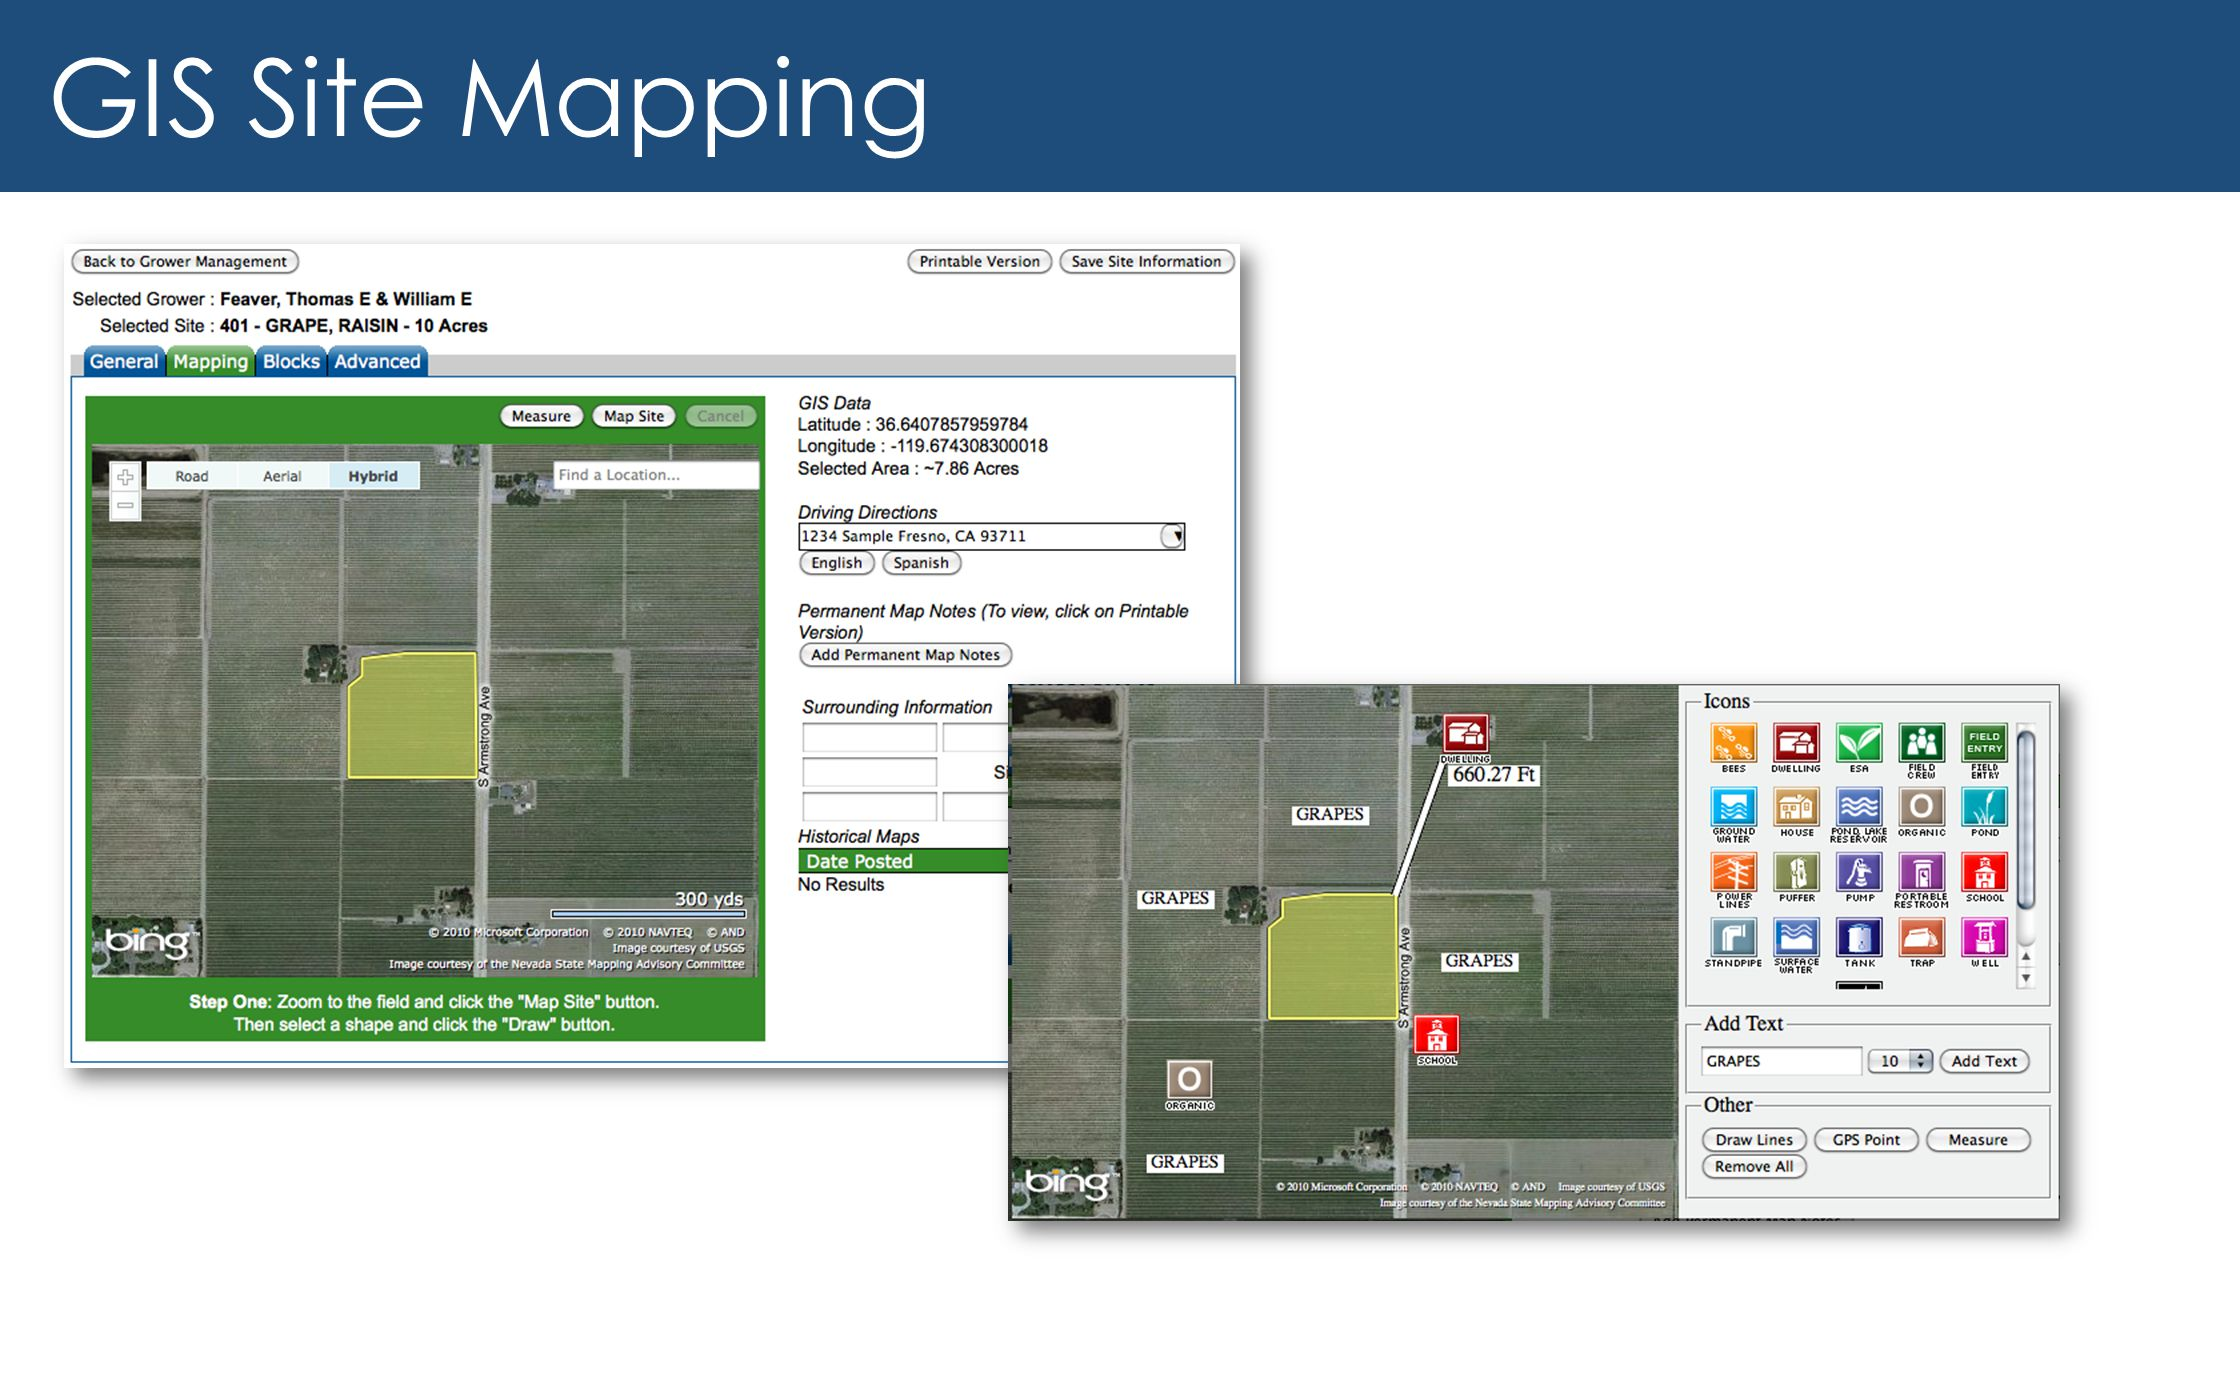 GIS Site Mapping